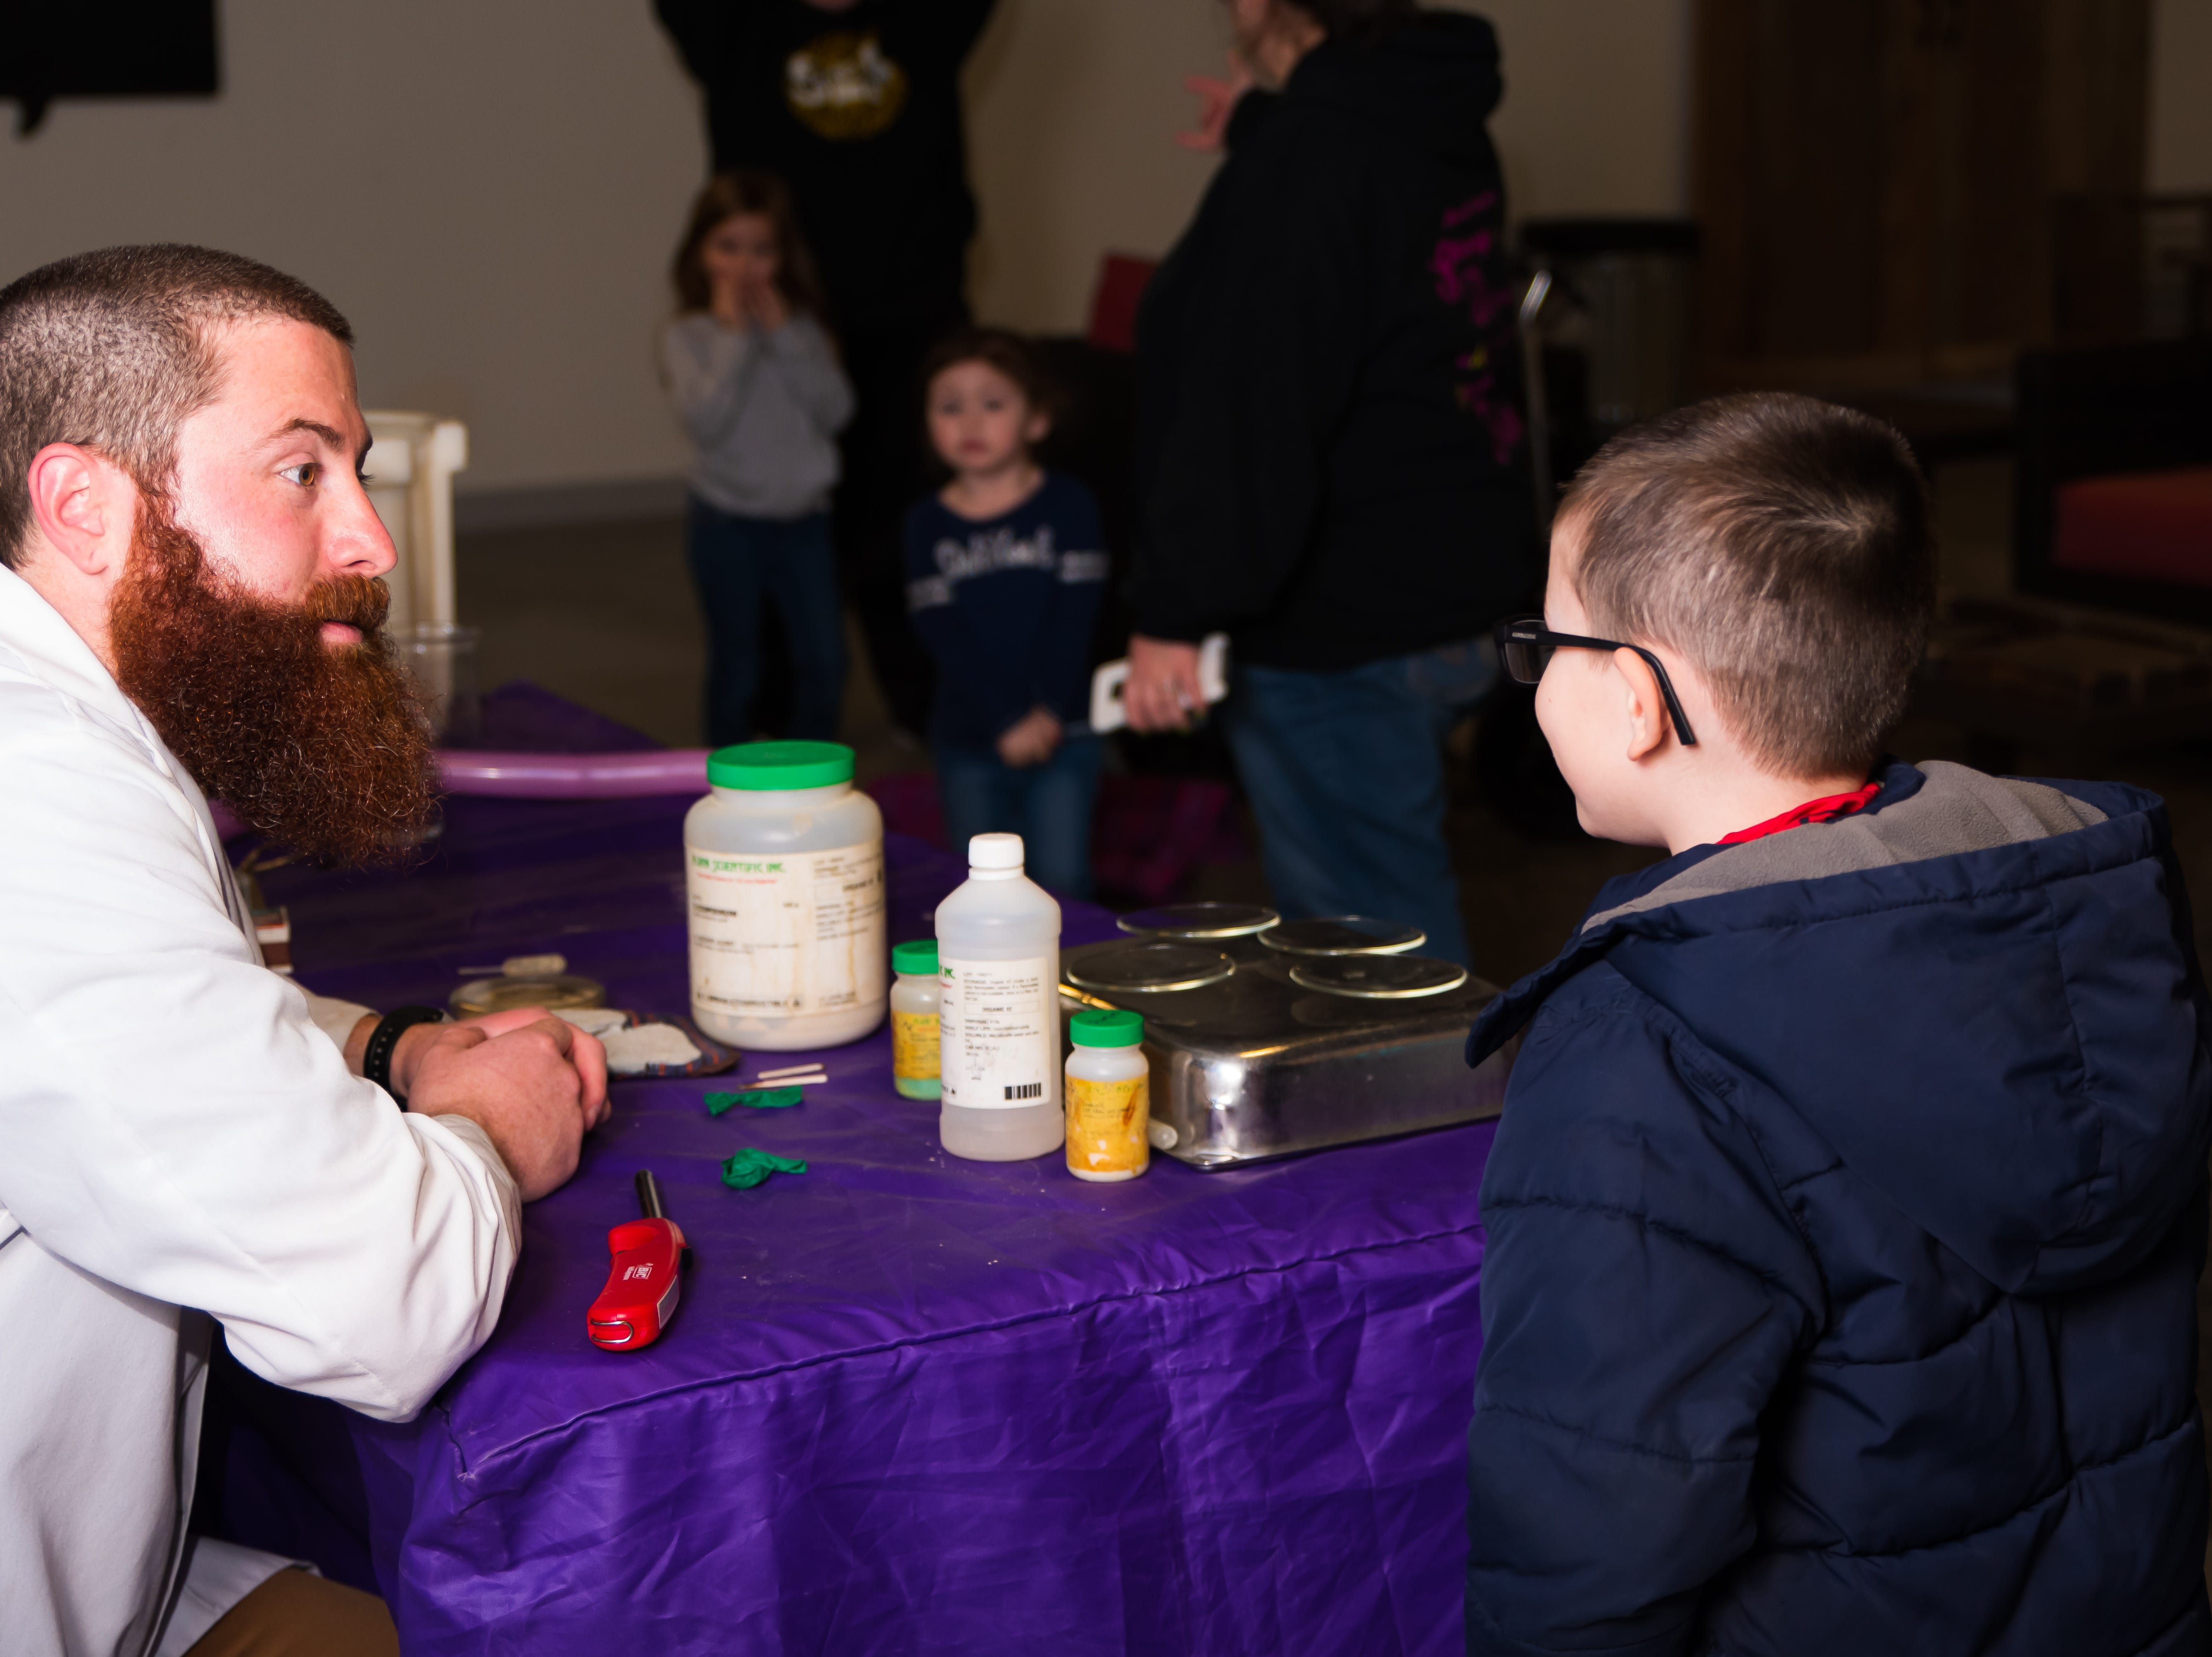 Bennett Mundell, 5, of Altoona thanks Mark Runkel from the Science Center on Wednesday, March 20, 2019, after watching the mad scientist perform experiments at the Outlets of Des Moines in Altoona.